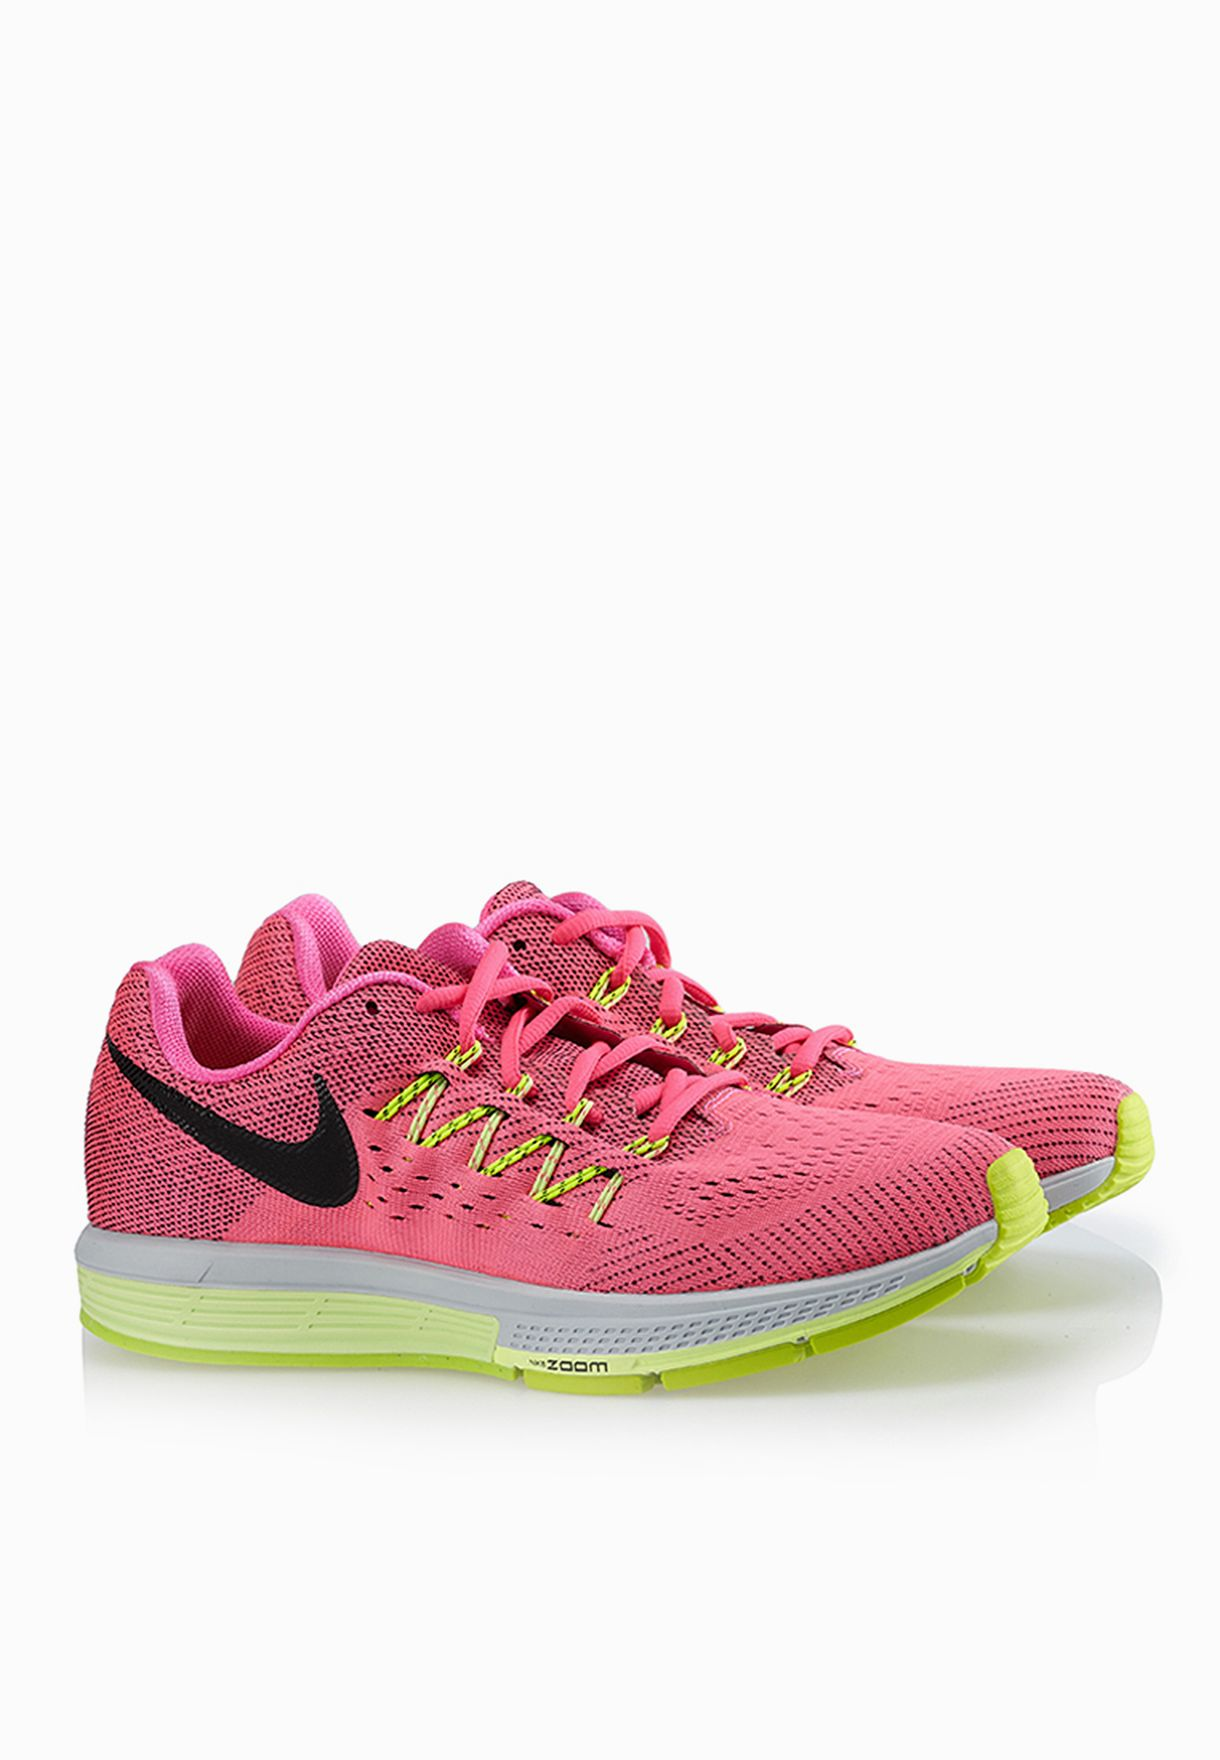 2ca12c9bca20 Shop Nike pink Air Zoom Vomero 10 717441-603 for Women in ...